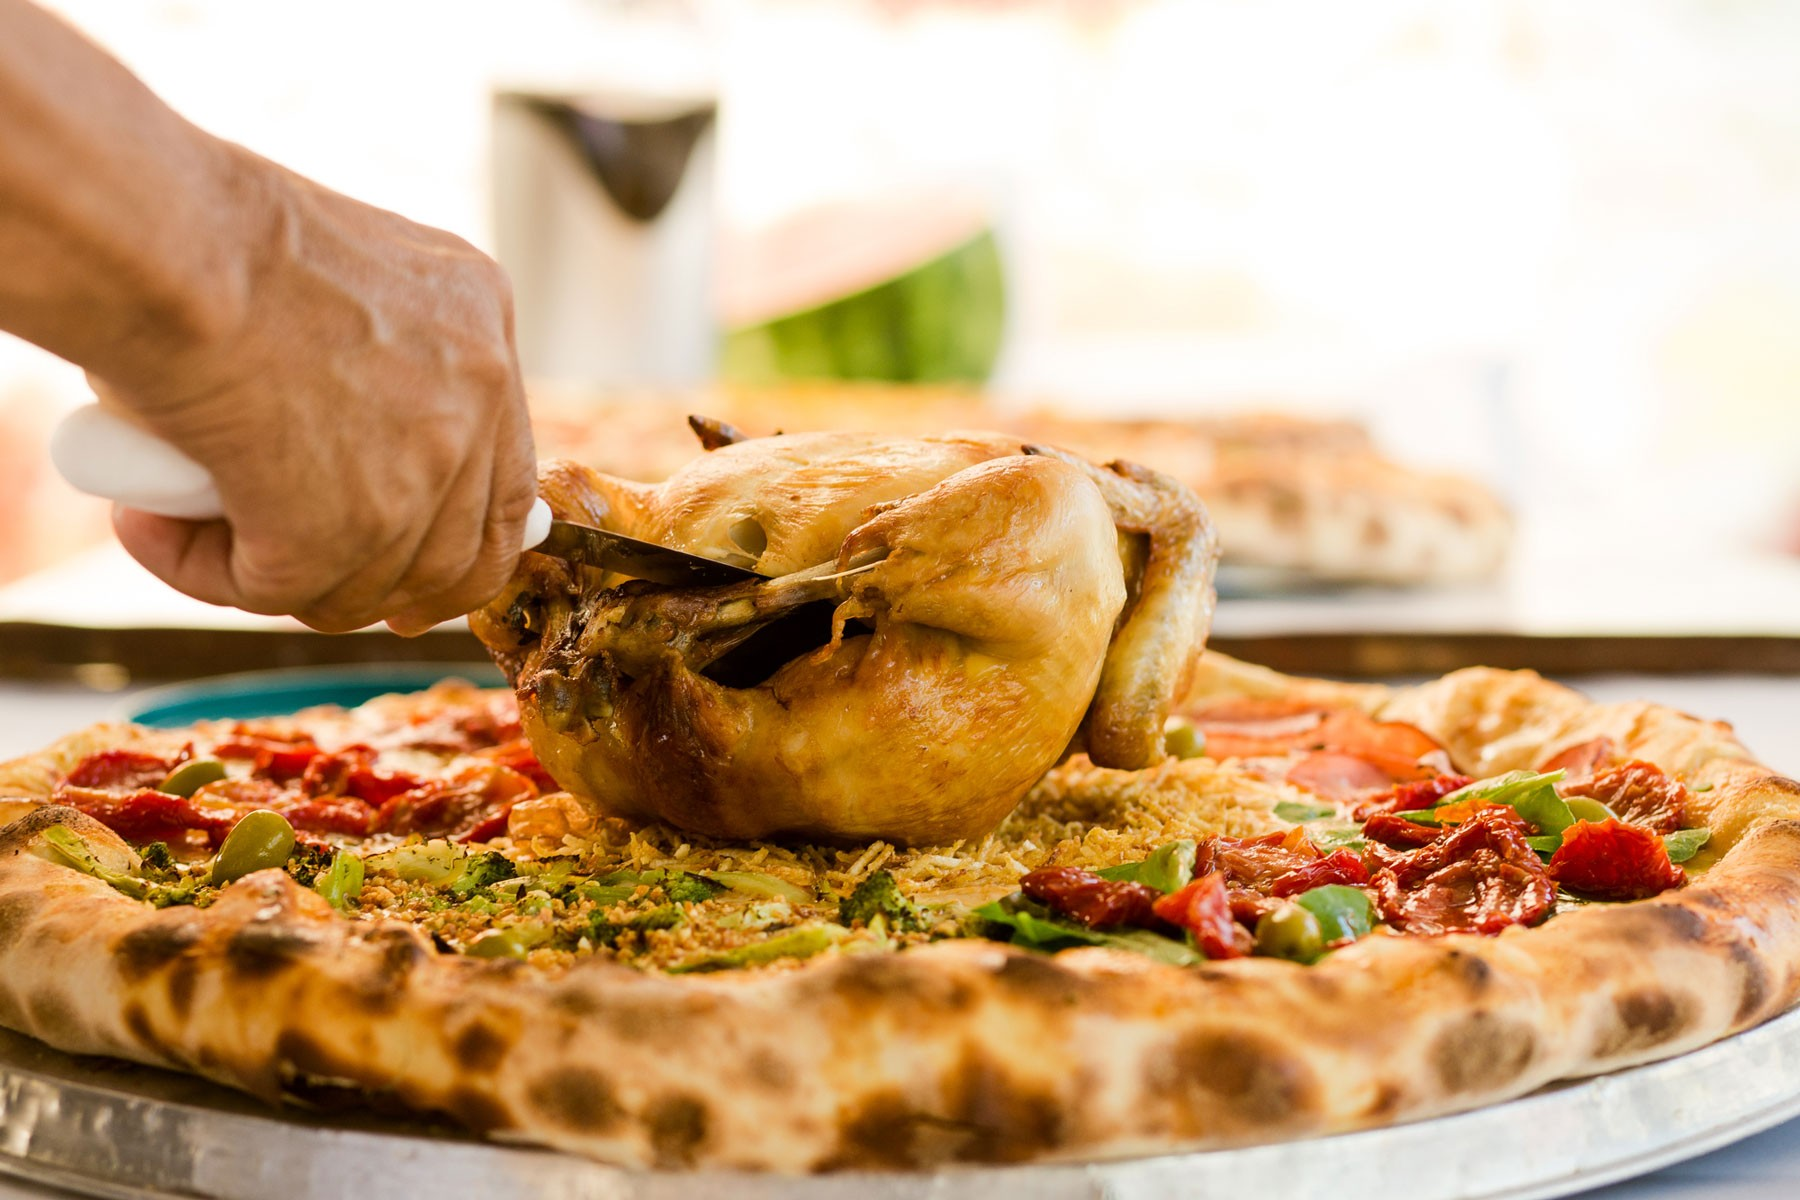 cutting-through-roasted-chicken-on-batepapo-pizza